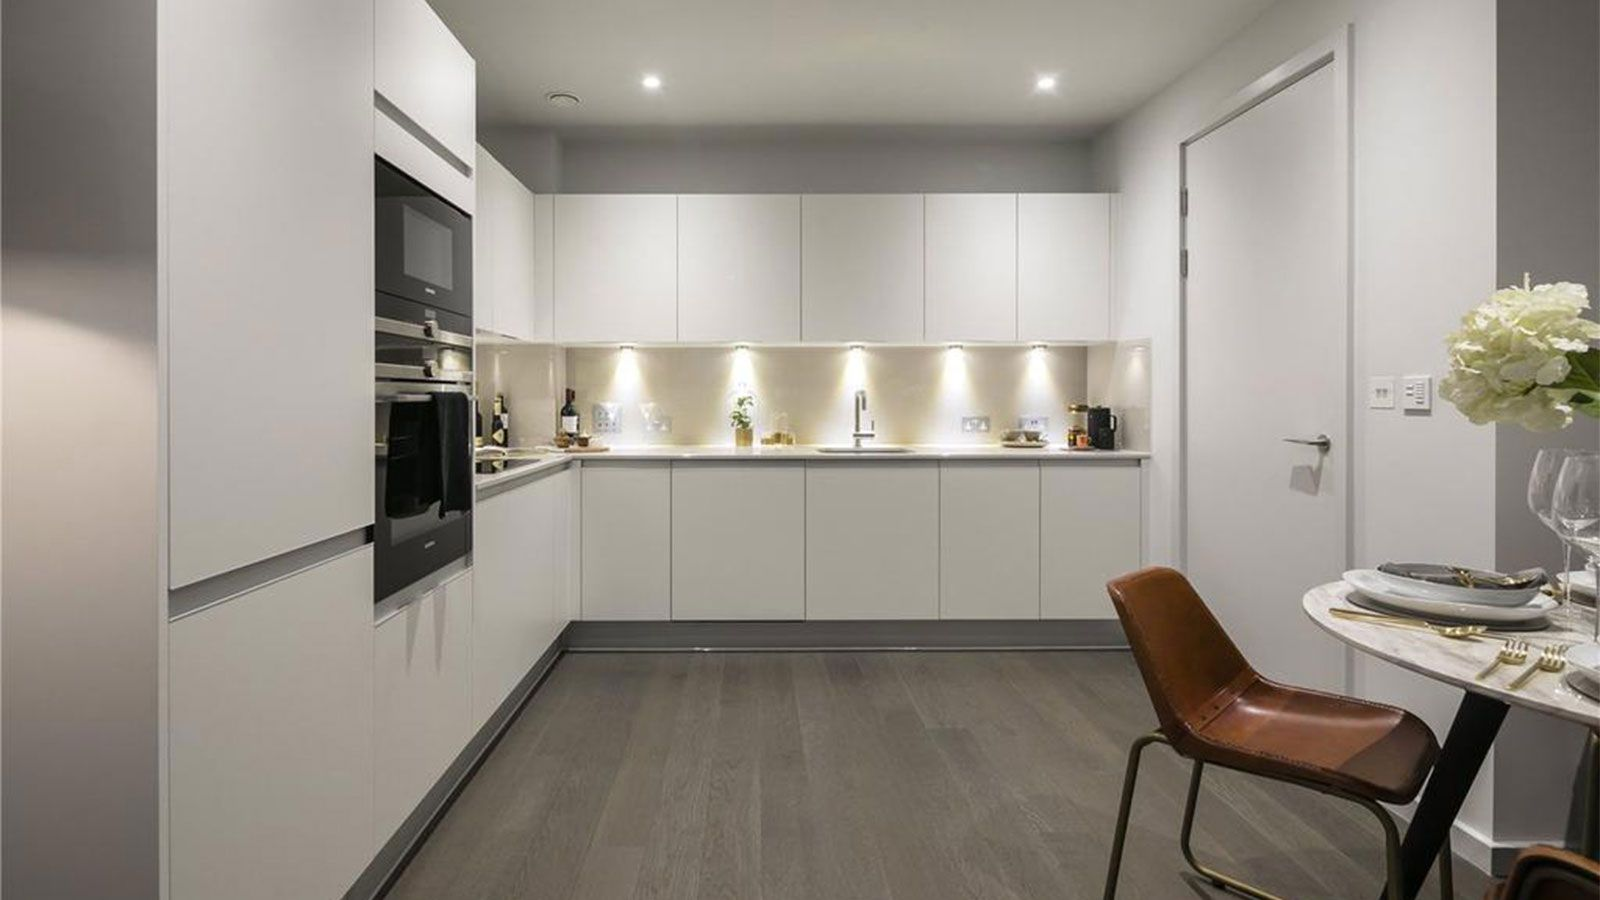 Porcelanosa Kitchen Cabinets Porcelanosa Grupo Projects Minimalist Apartments In The Centre Of